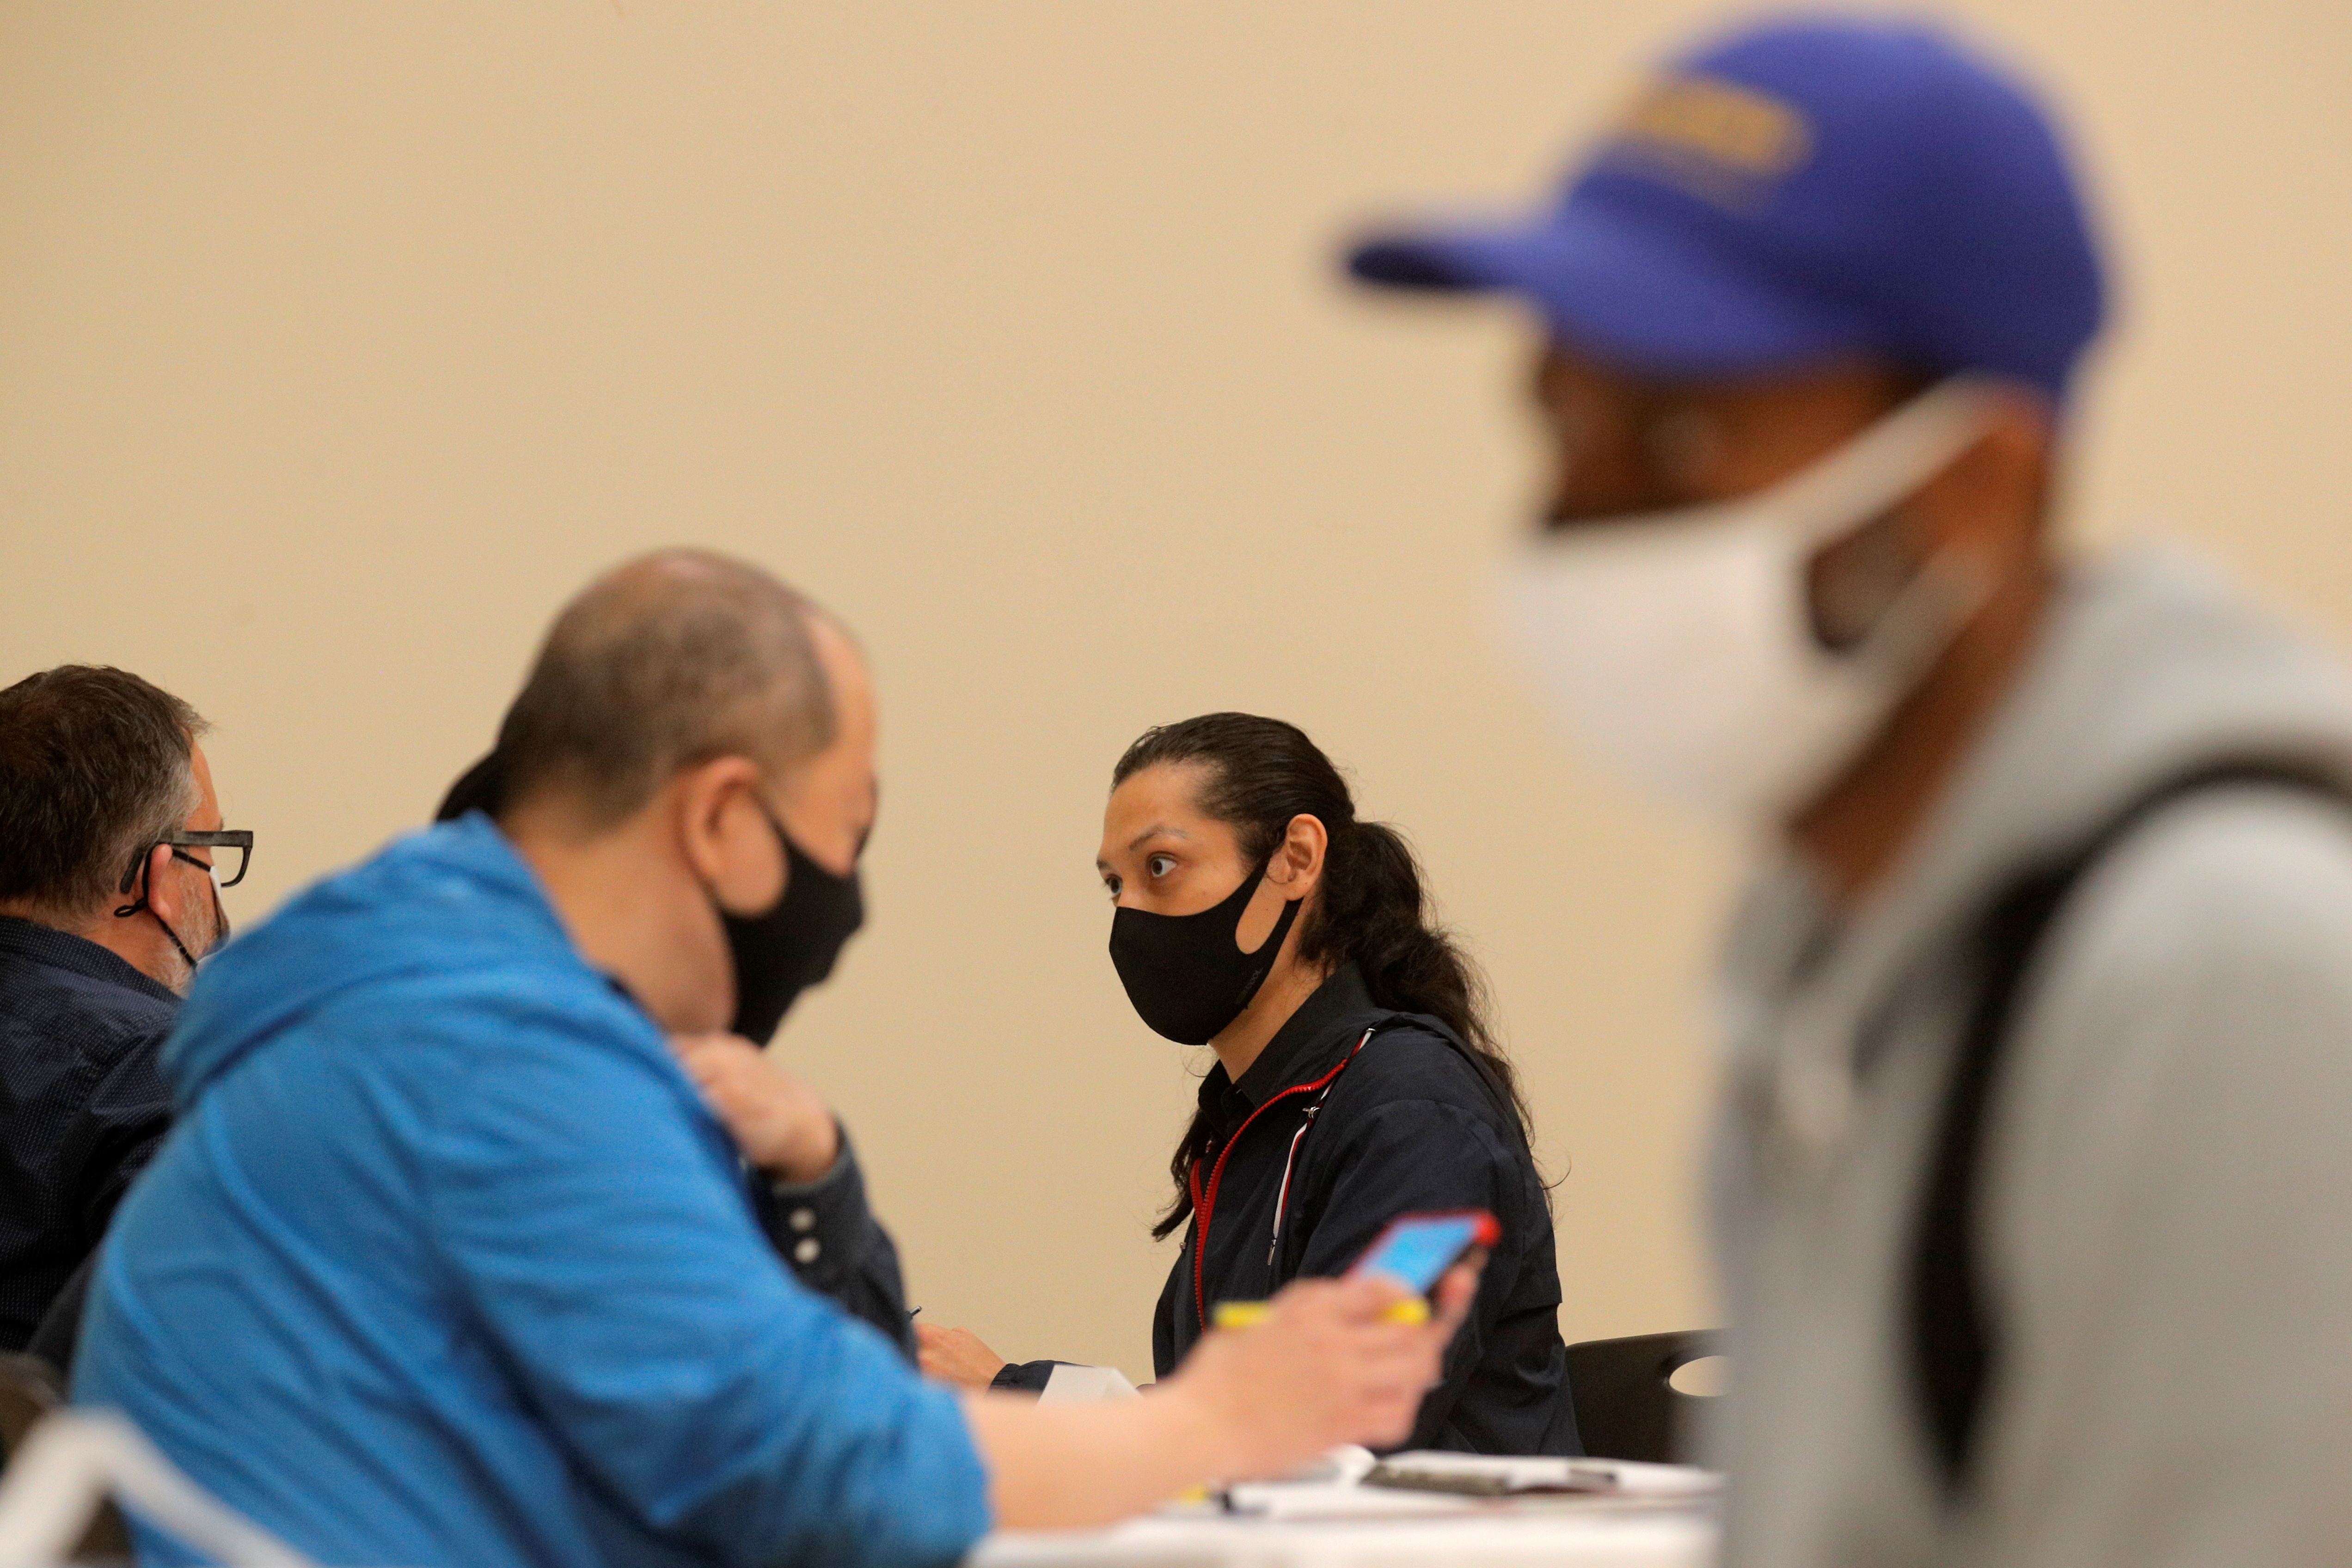 Applicants talk with recruiters during a restaurant job career fair organized by the industry group High Road Restaurants in New York City, U.S., May 13, 2021.  REUTERS/Brendan McDermid